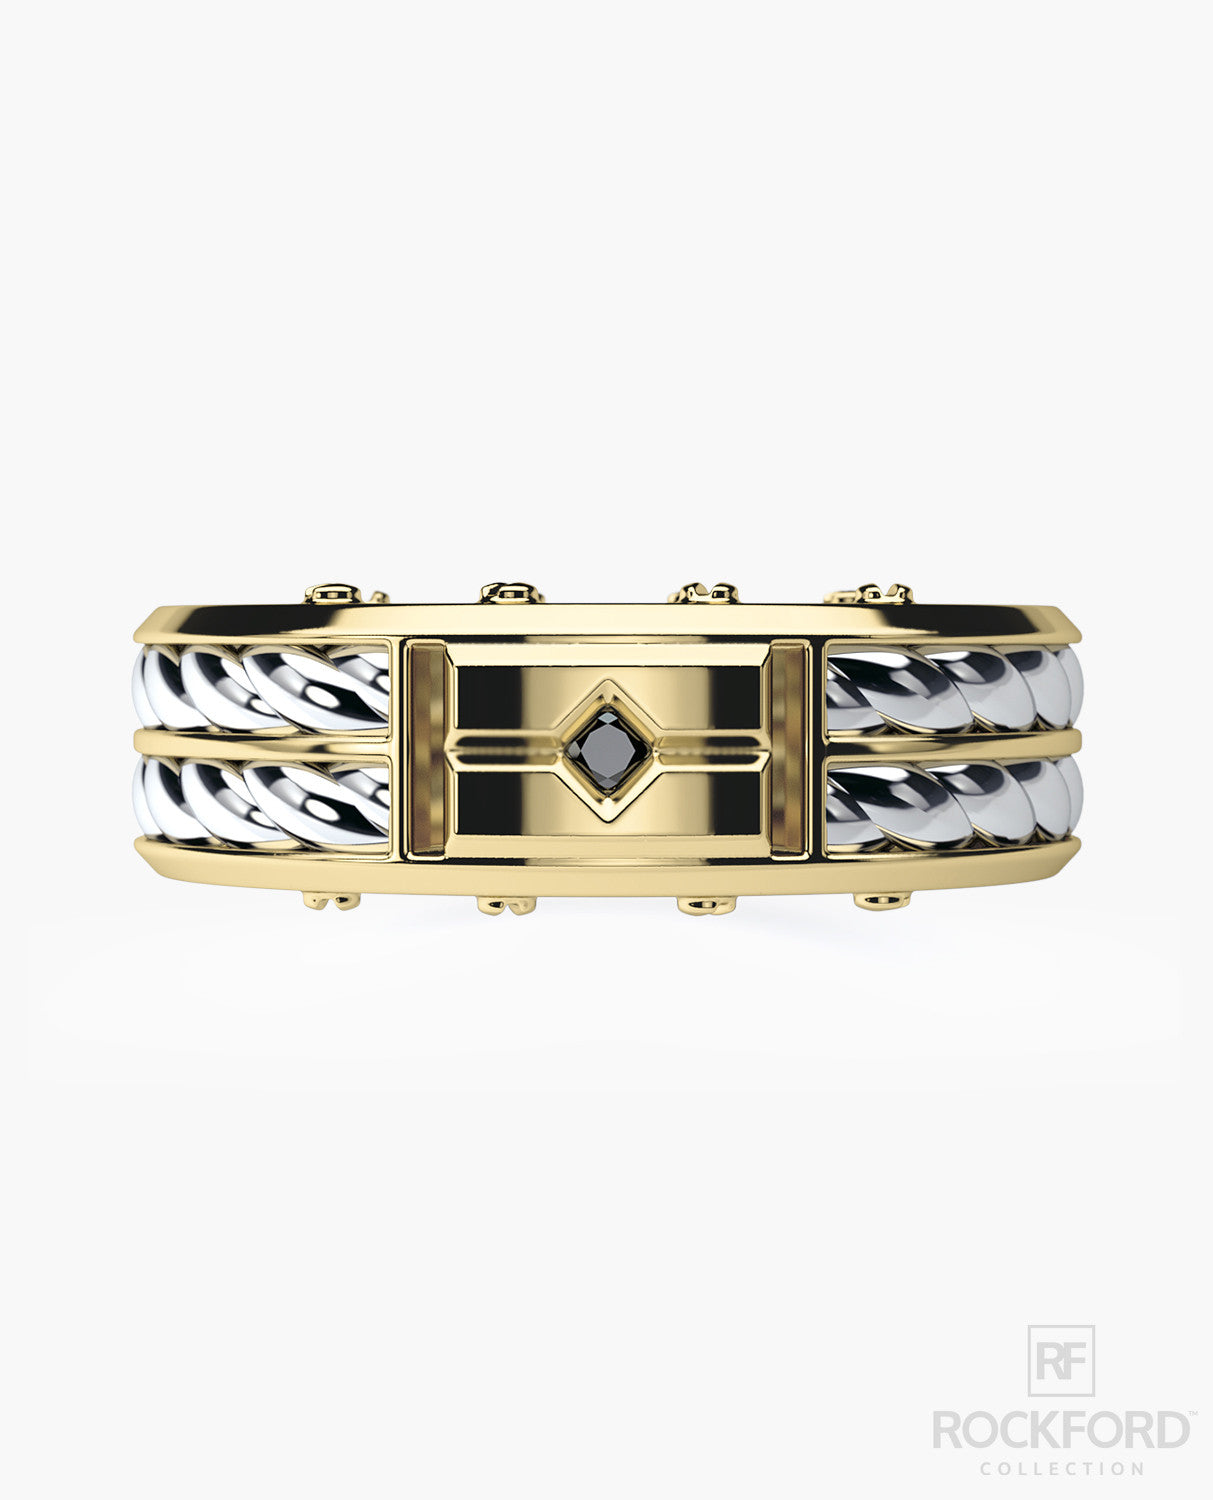 SAN LORENZO Two-Tone Gold Mens Wedding Band with 0.90 ct Black Diamonds